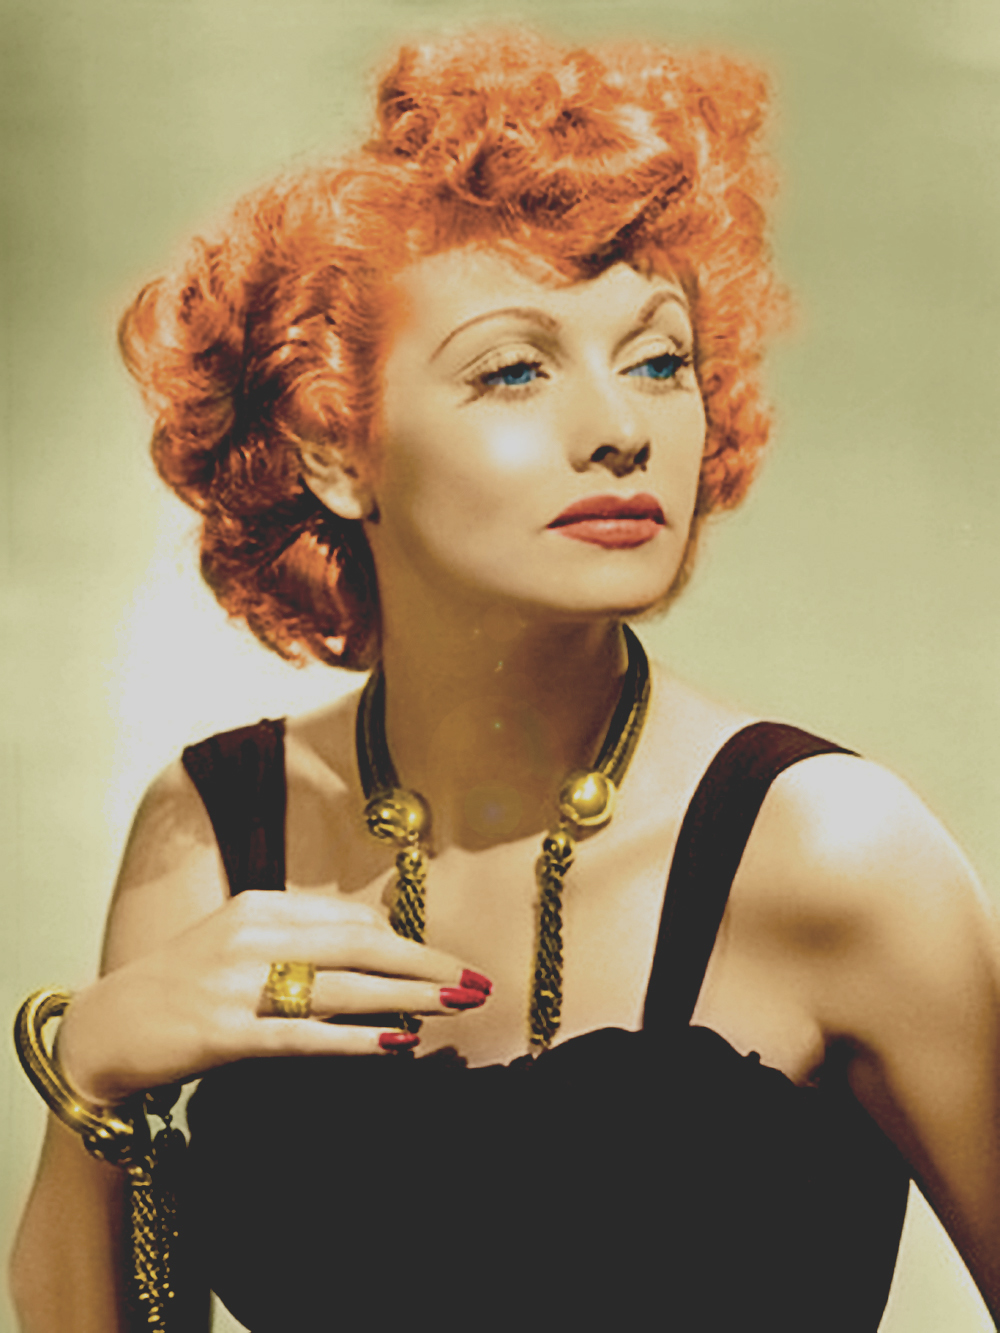 Lucille Ball Image By Blo